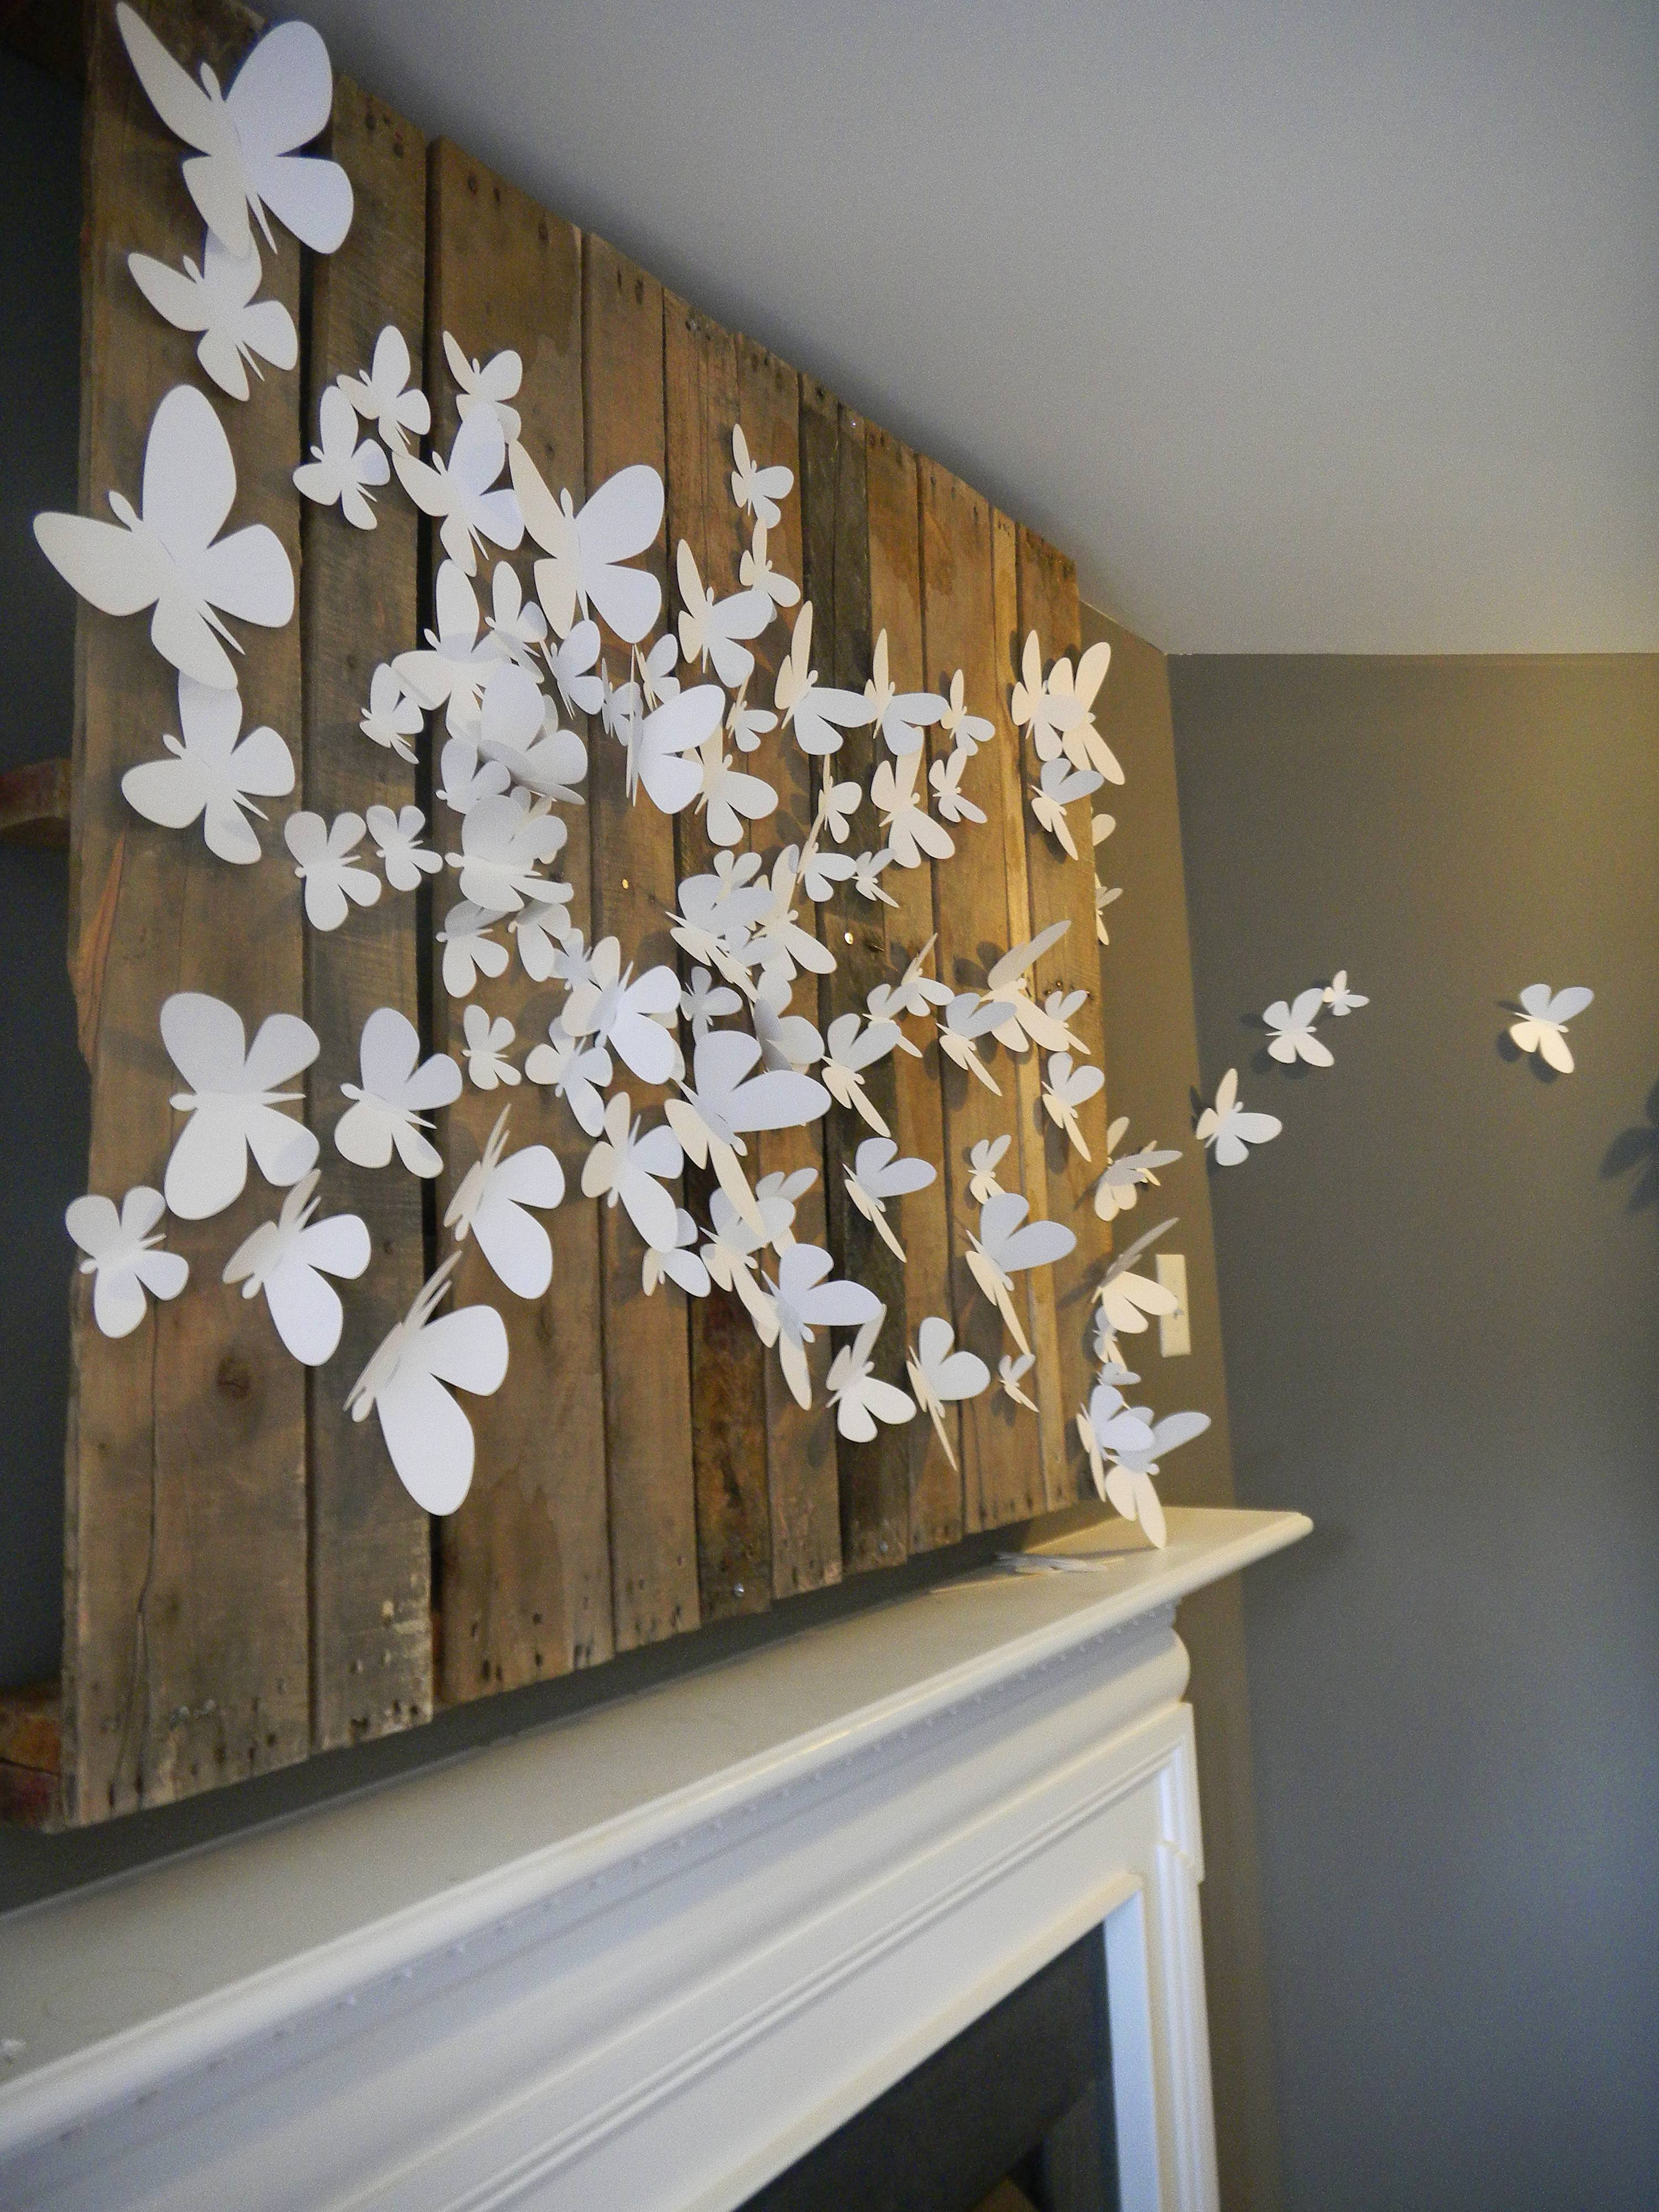 3D Butterfly Wall Art | Design Fabulous Inside Most Recently Released Butterflies 3D Wall Art (View 6 of 20)